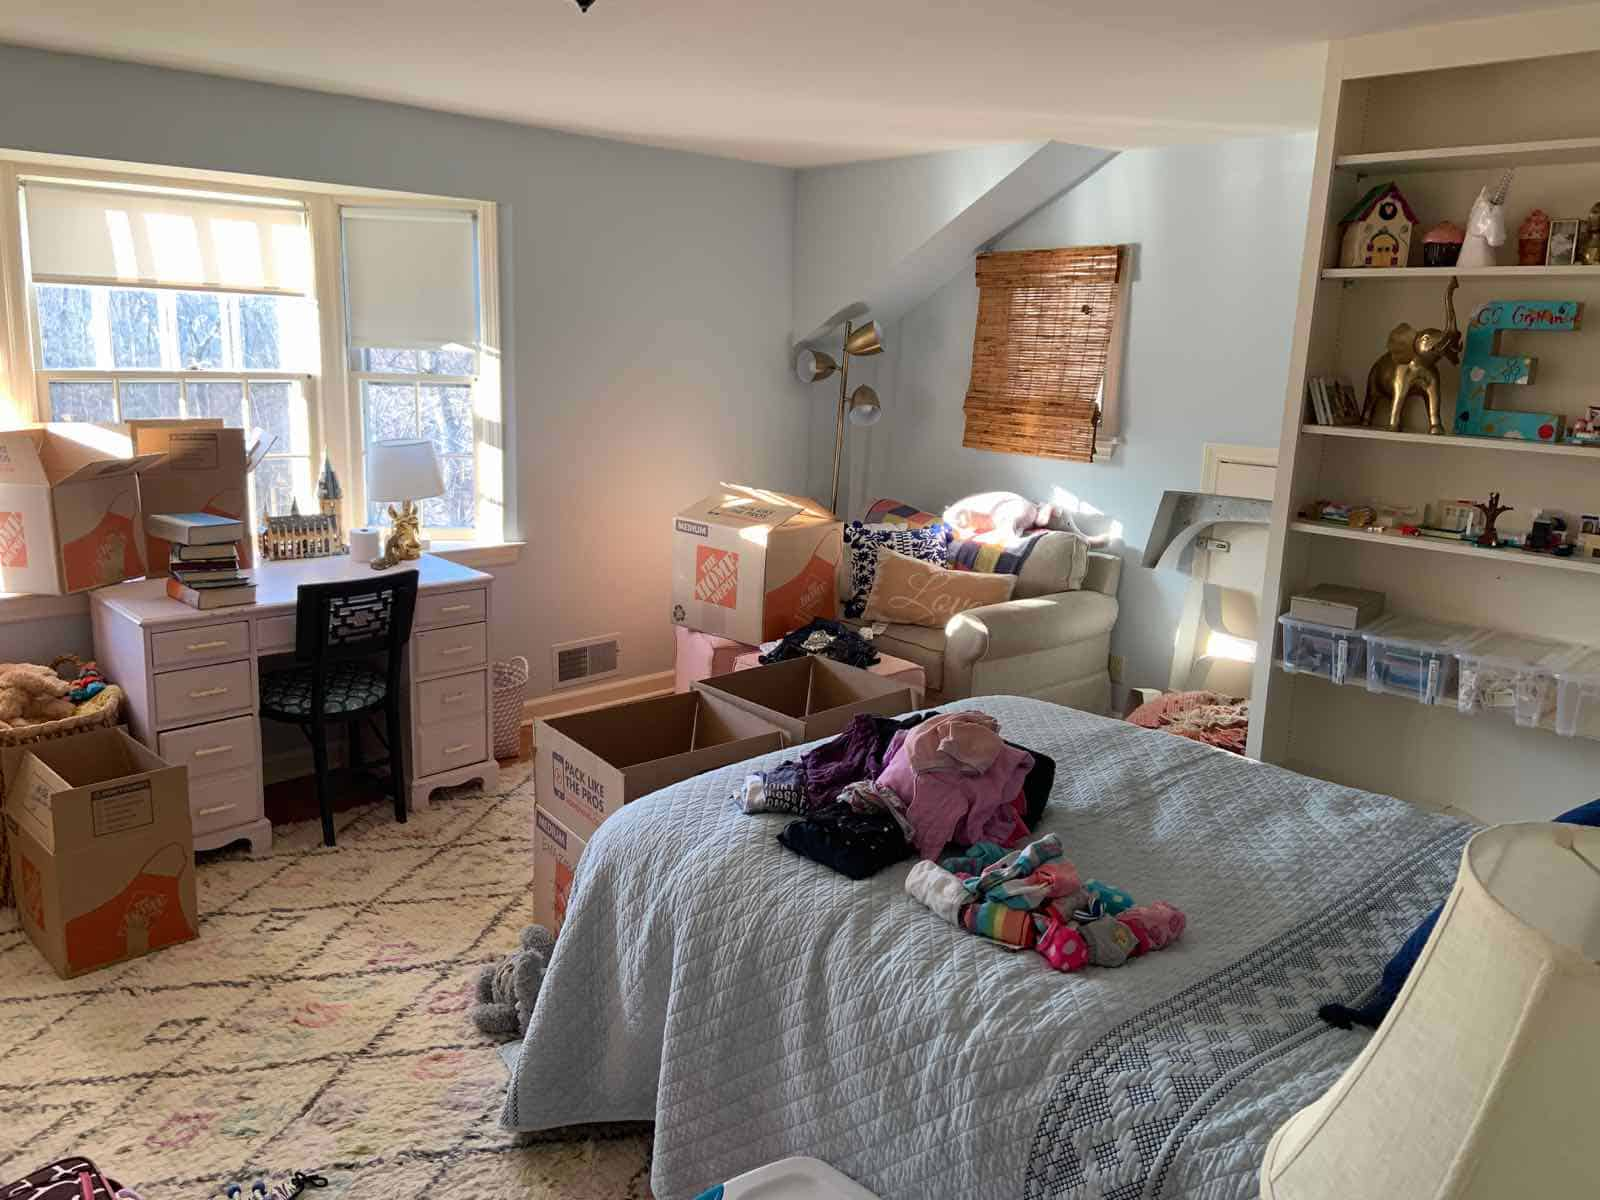 eleanors room with boxes